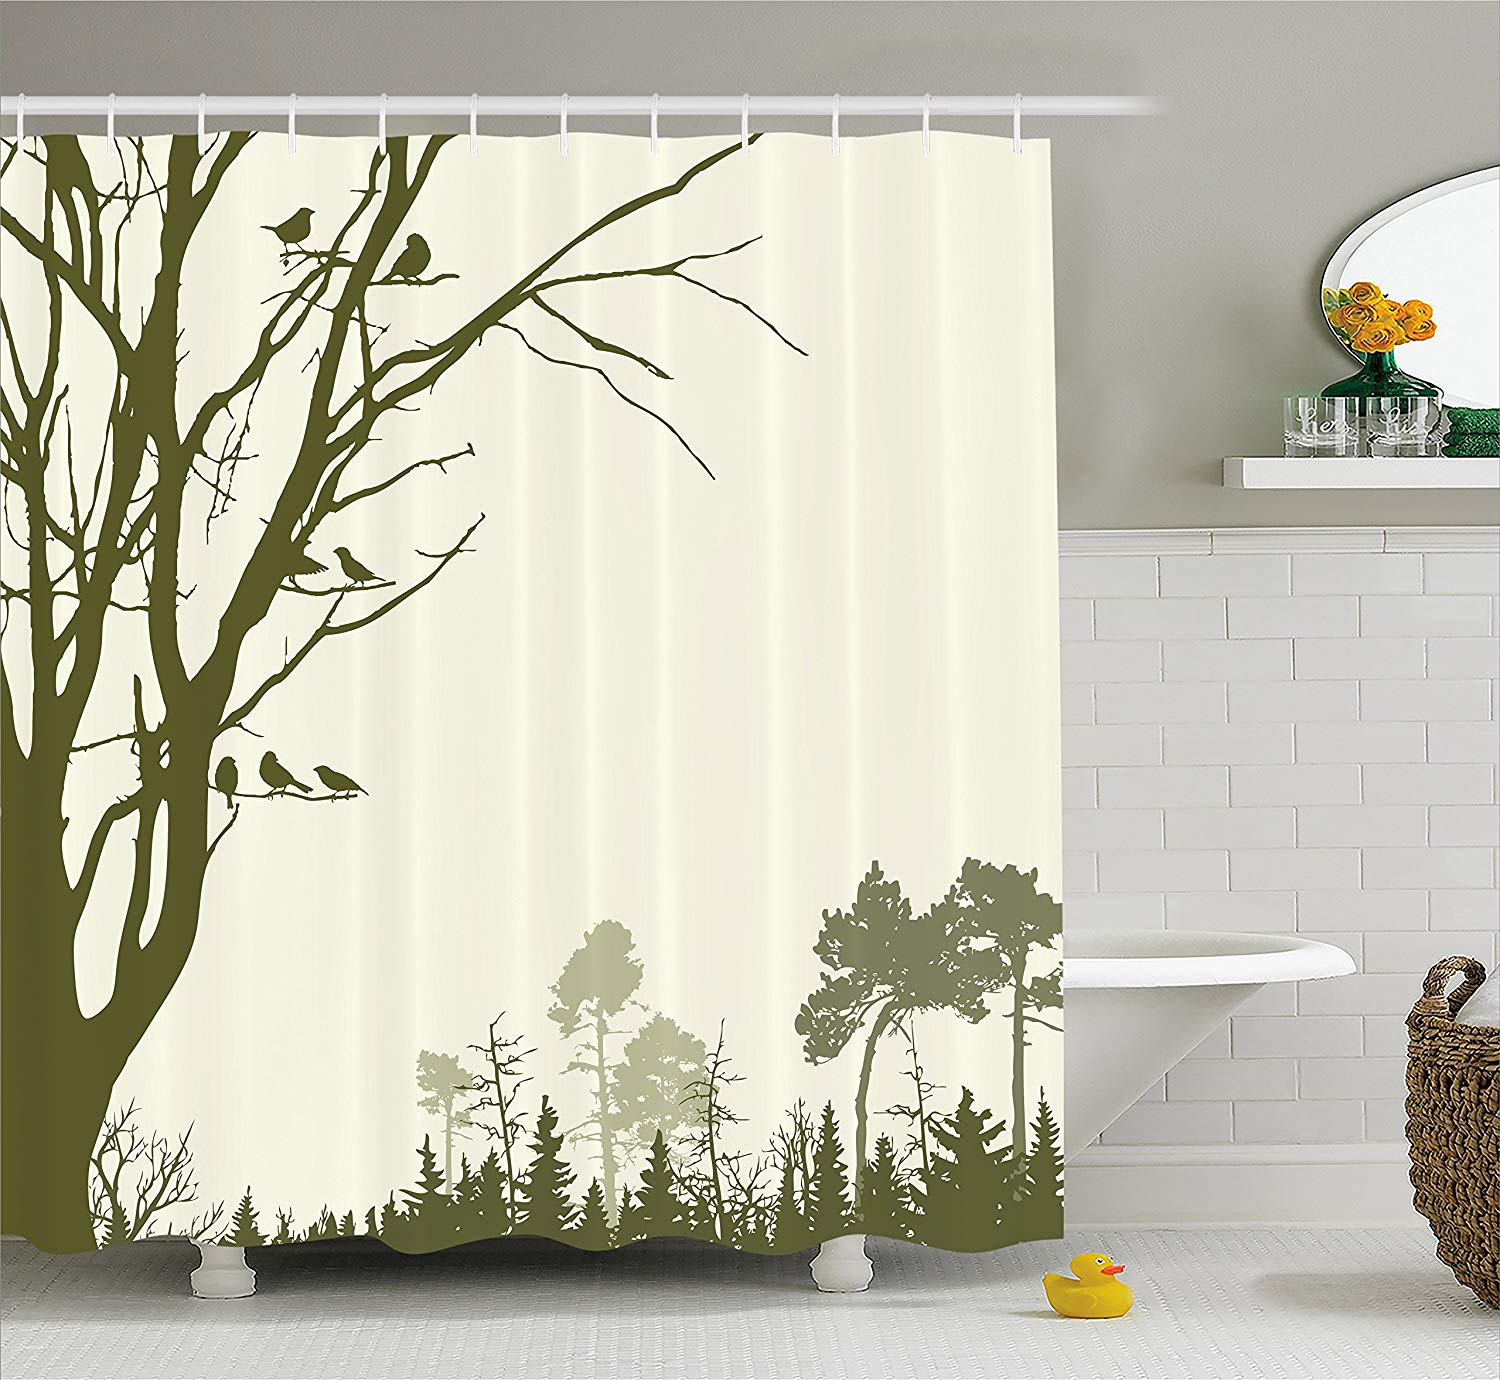 Forest Shower Curtain Nature Theme The Panorama Of A Forest